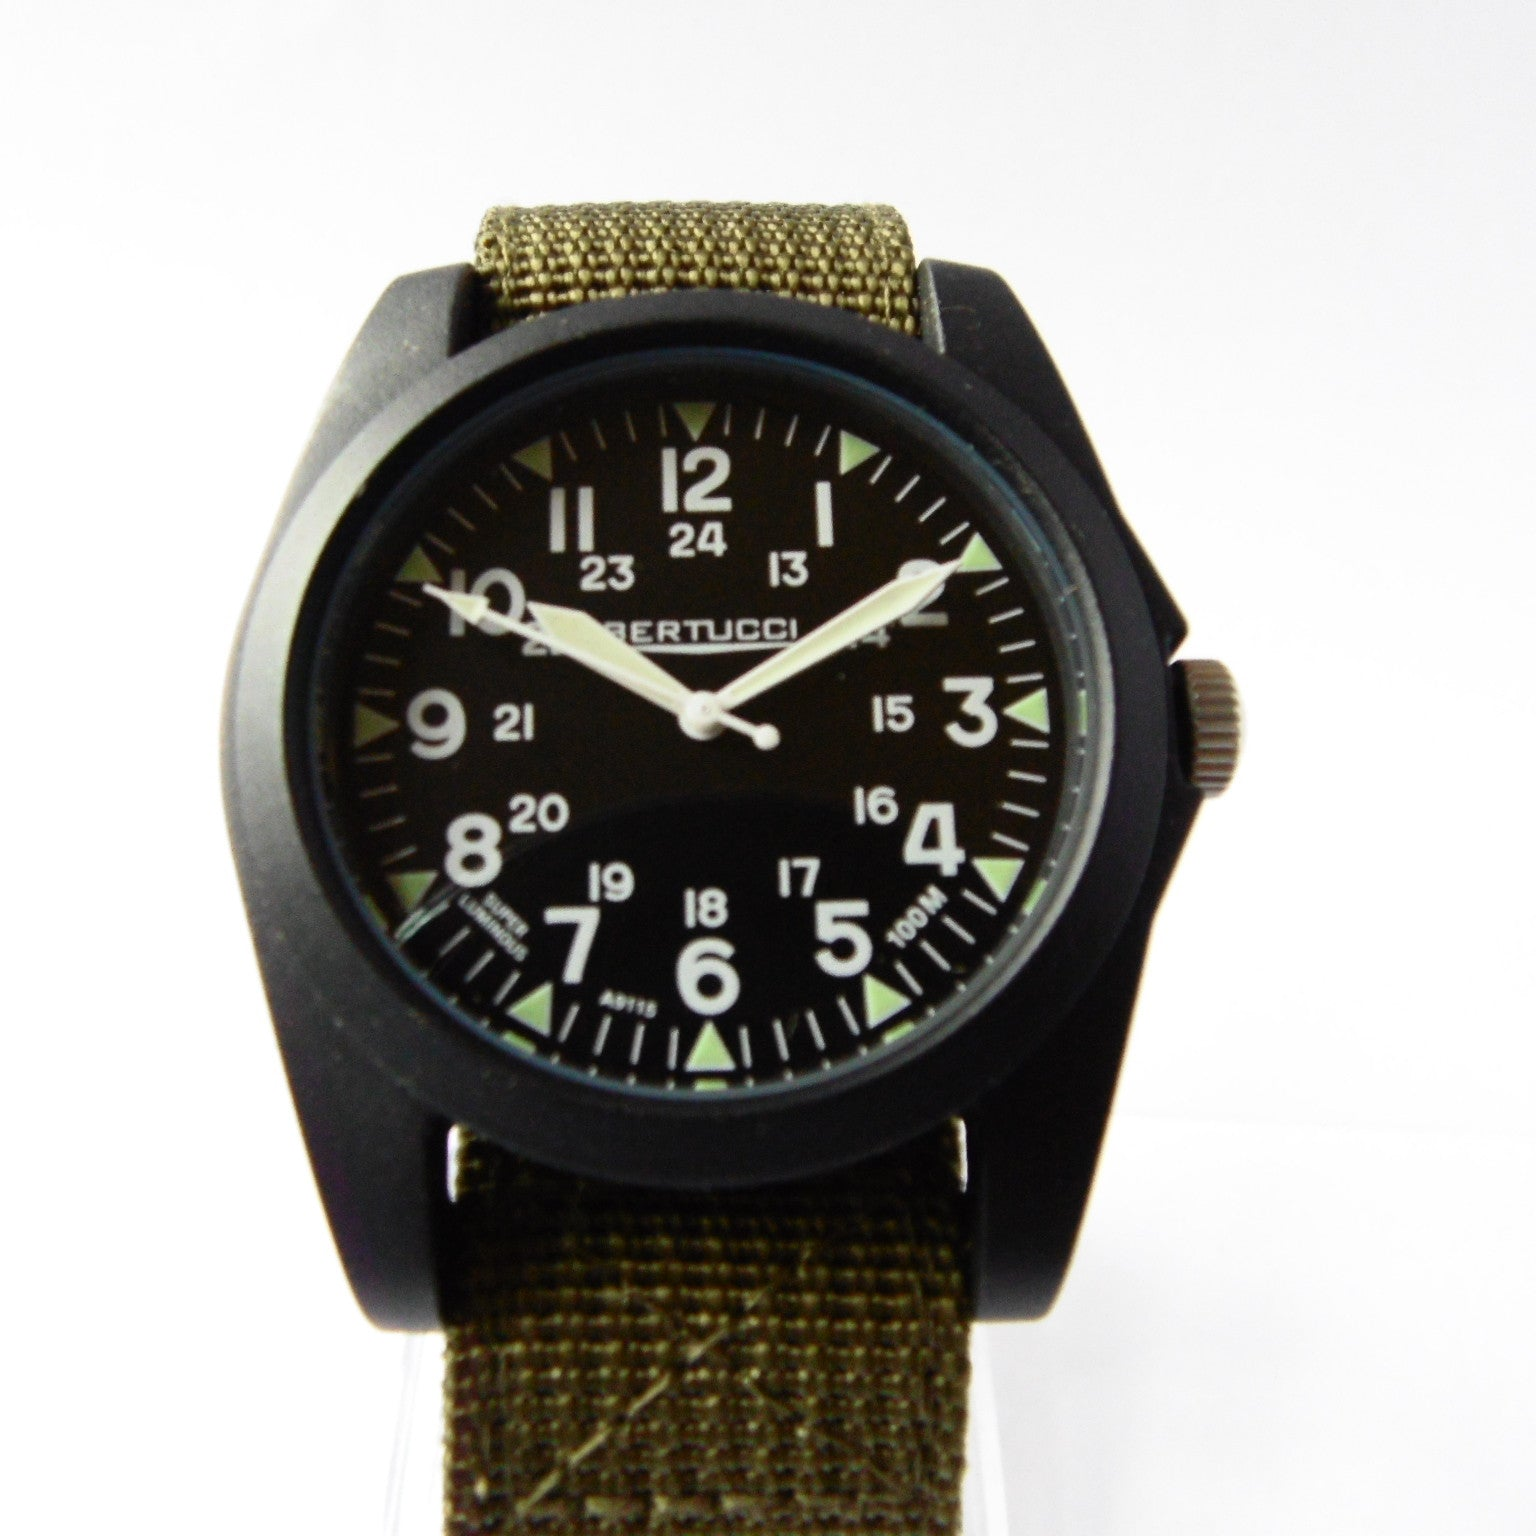 Bertucci A-3P Sportsman Vintage Field Watch - Black Dial 13351 - Watchfinder General - UK suppliers of Russian Vostok Parnis Watches MWC G10  - 3